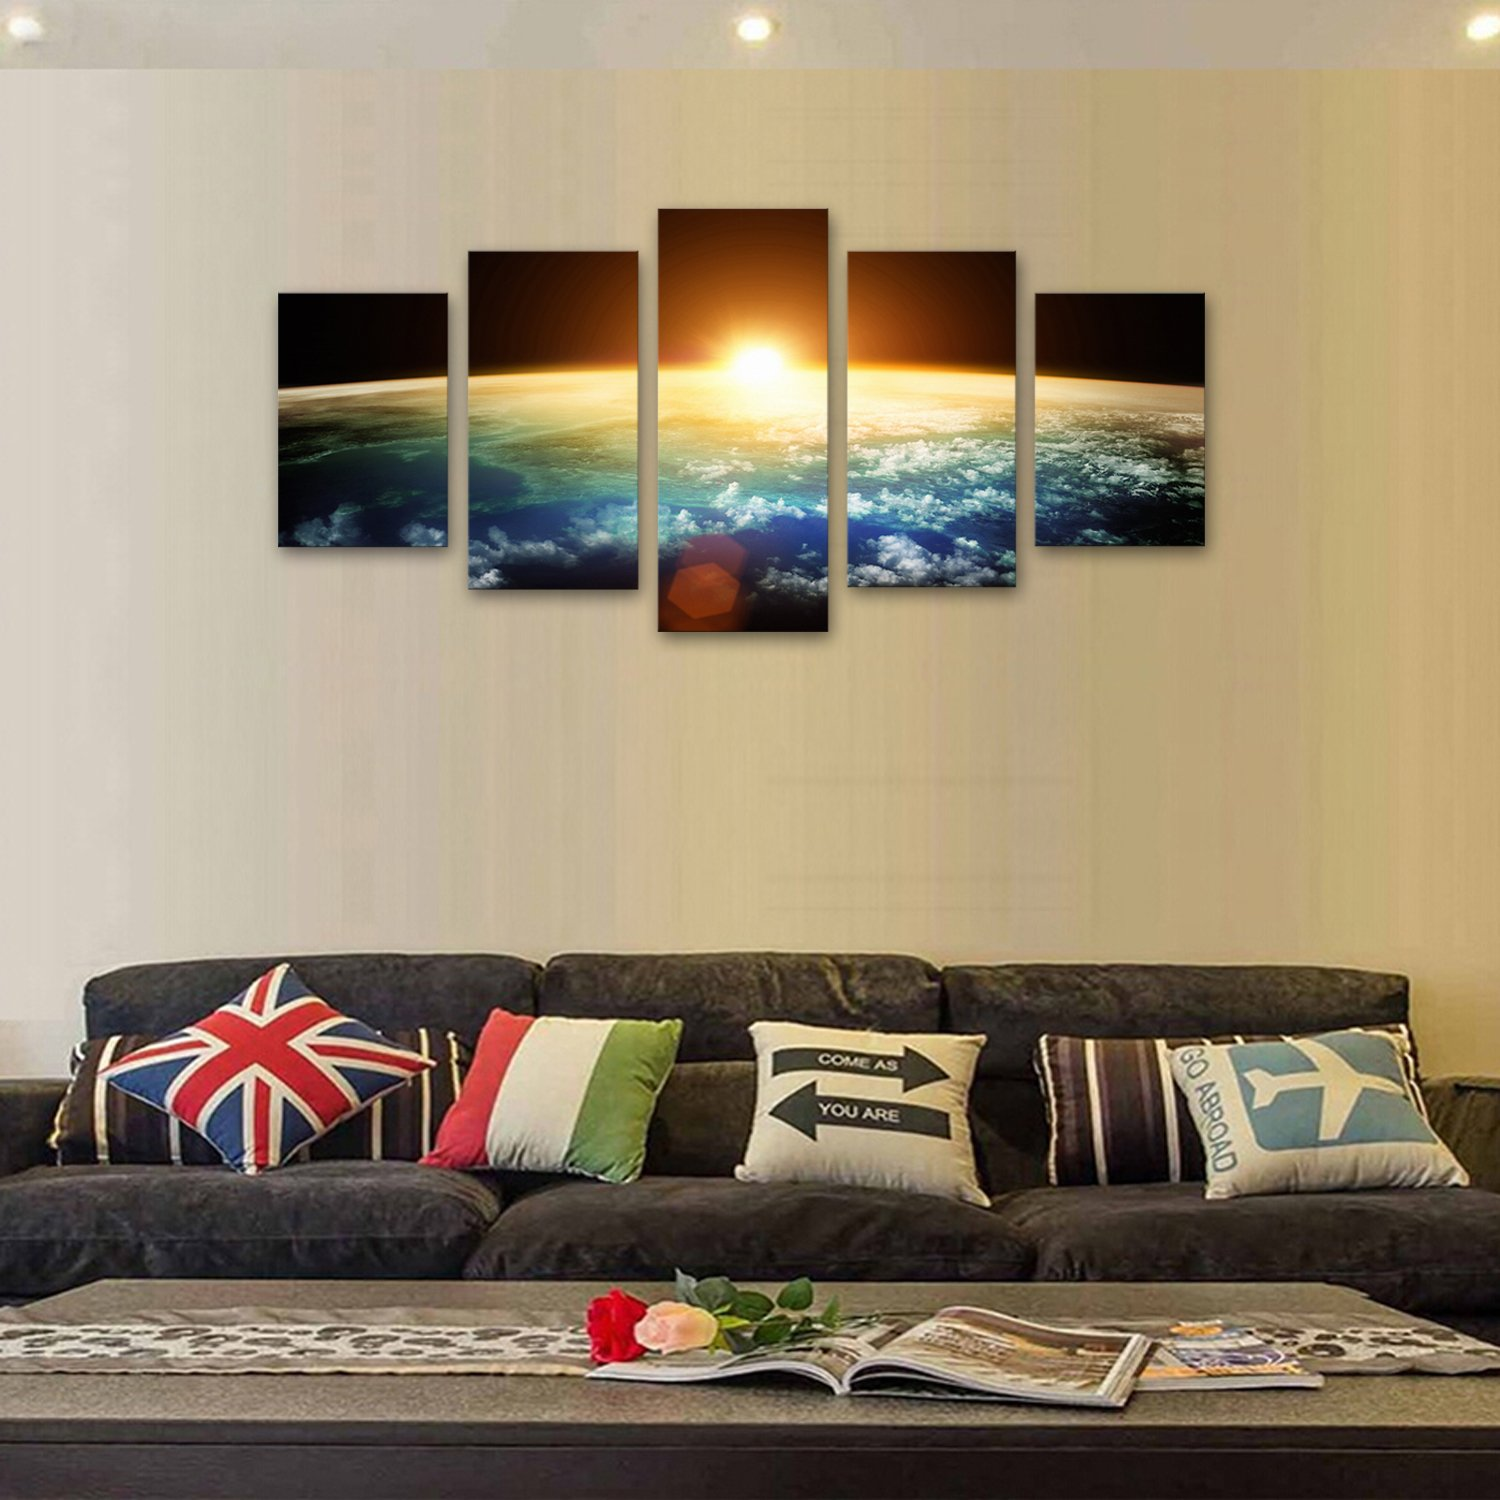 Amazon.com: Wall Art 5 Panel Beach Pictures Artwork for Living Room ...